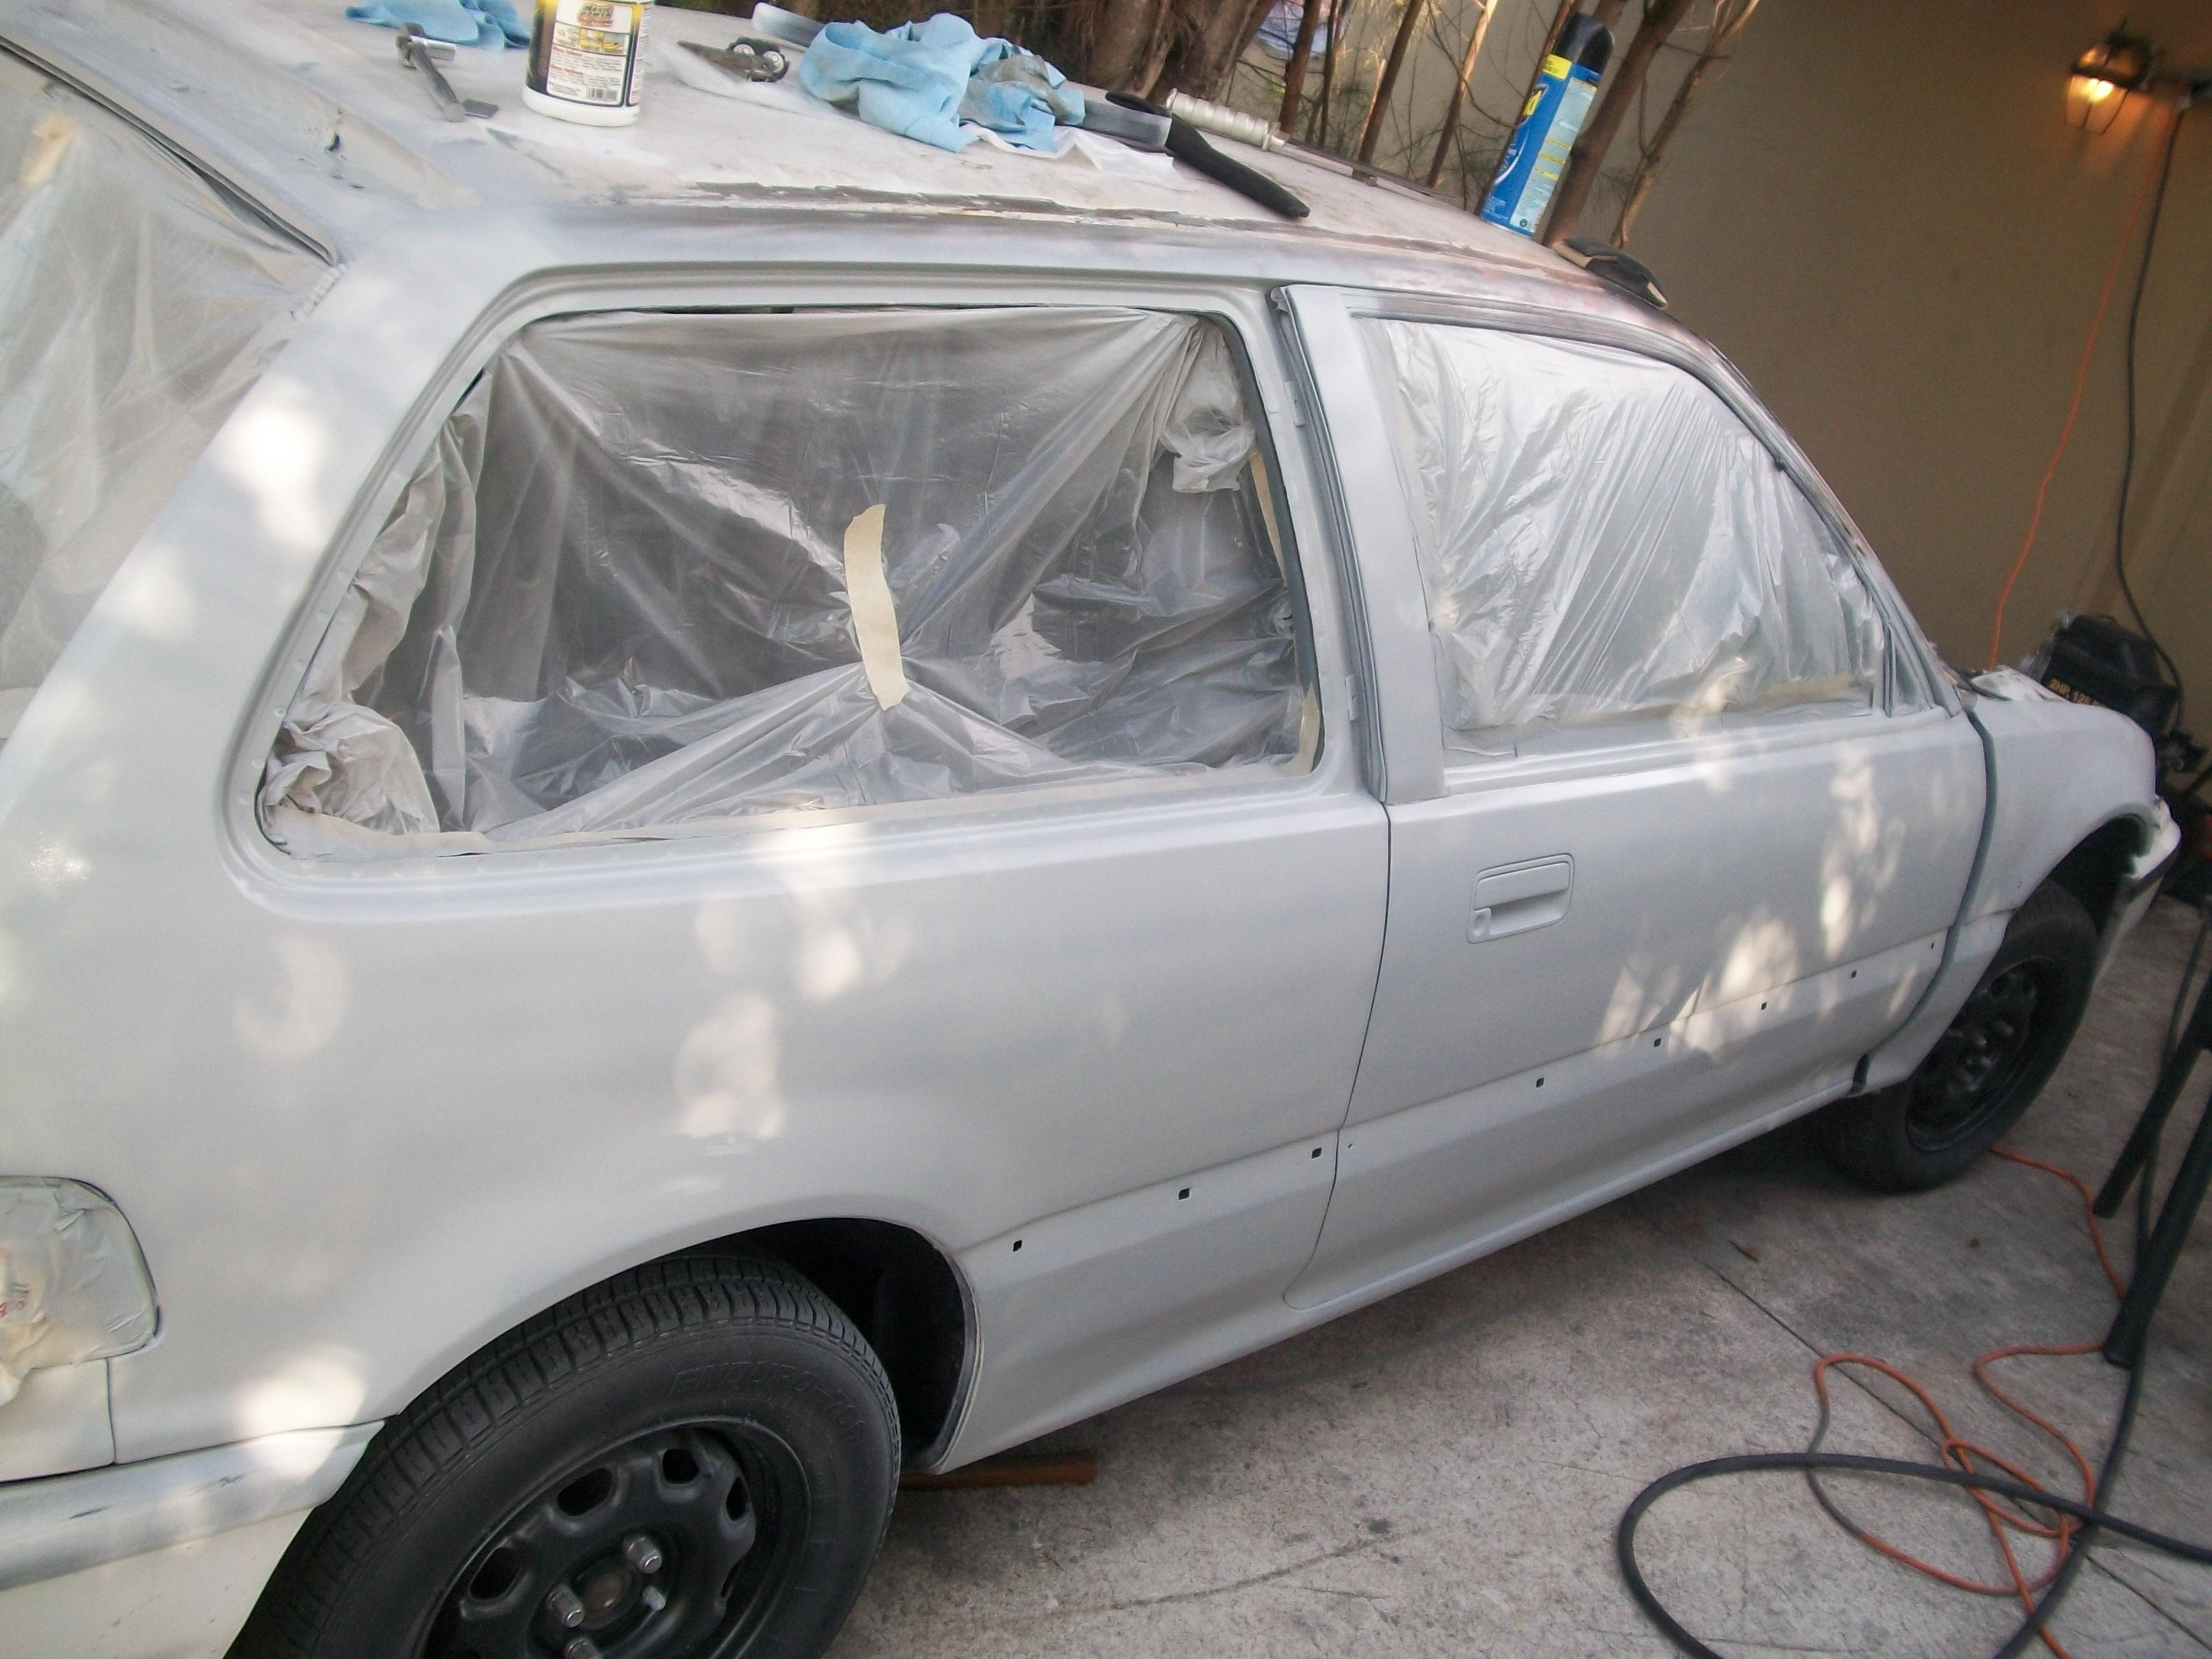 Click image for larger version  Name:josh's project car 743.jpg Views:748 Size:744.8 KB ID:28376